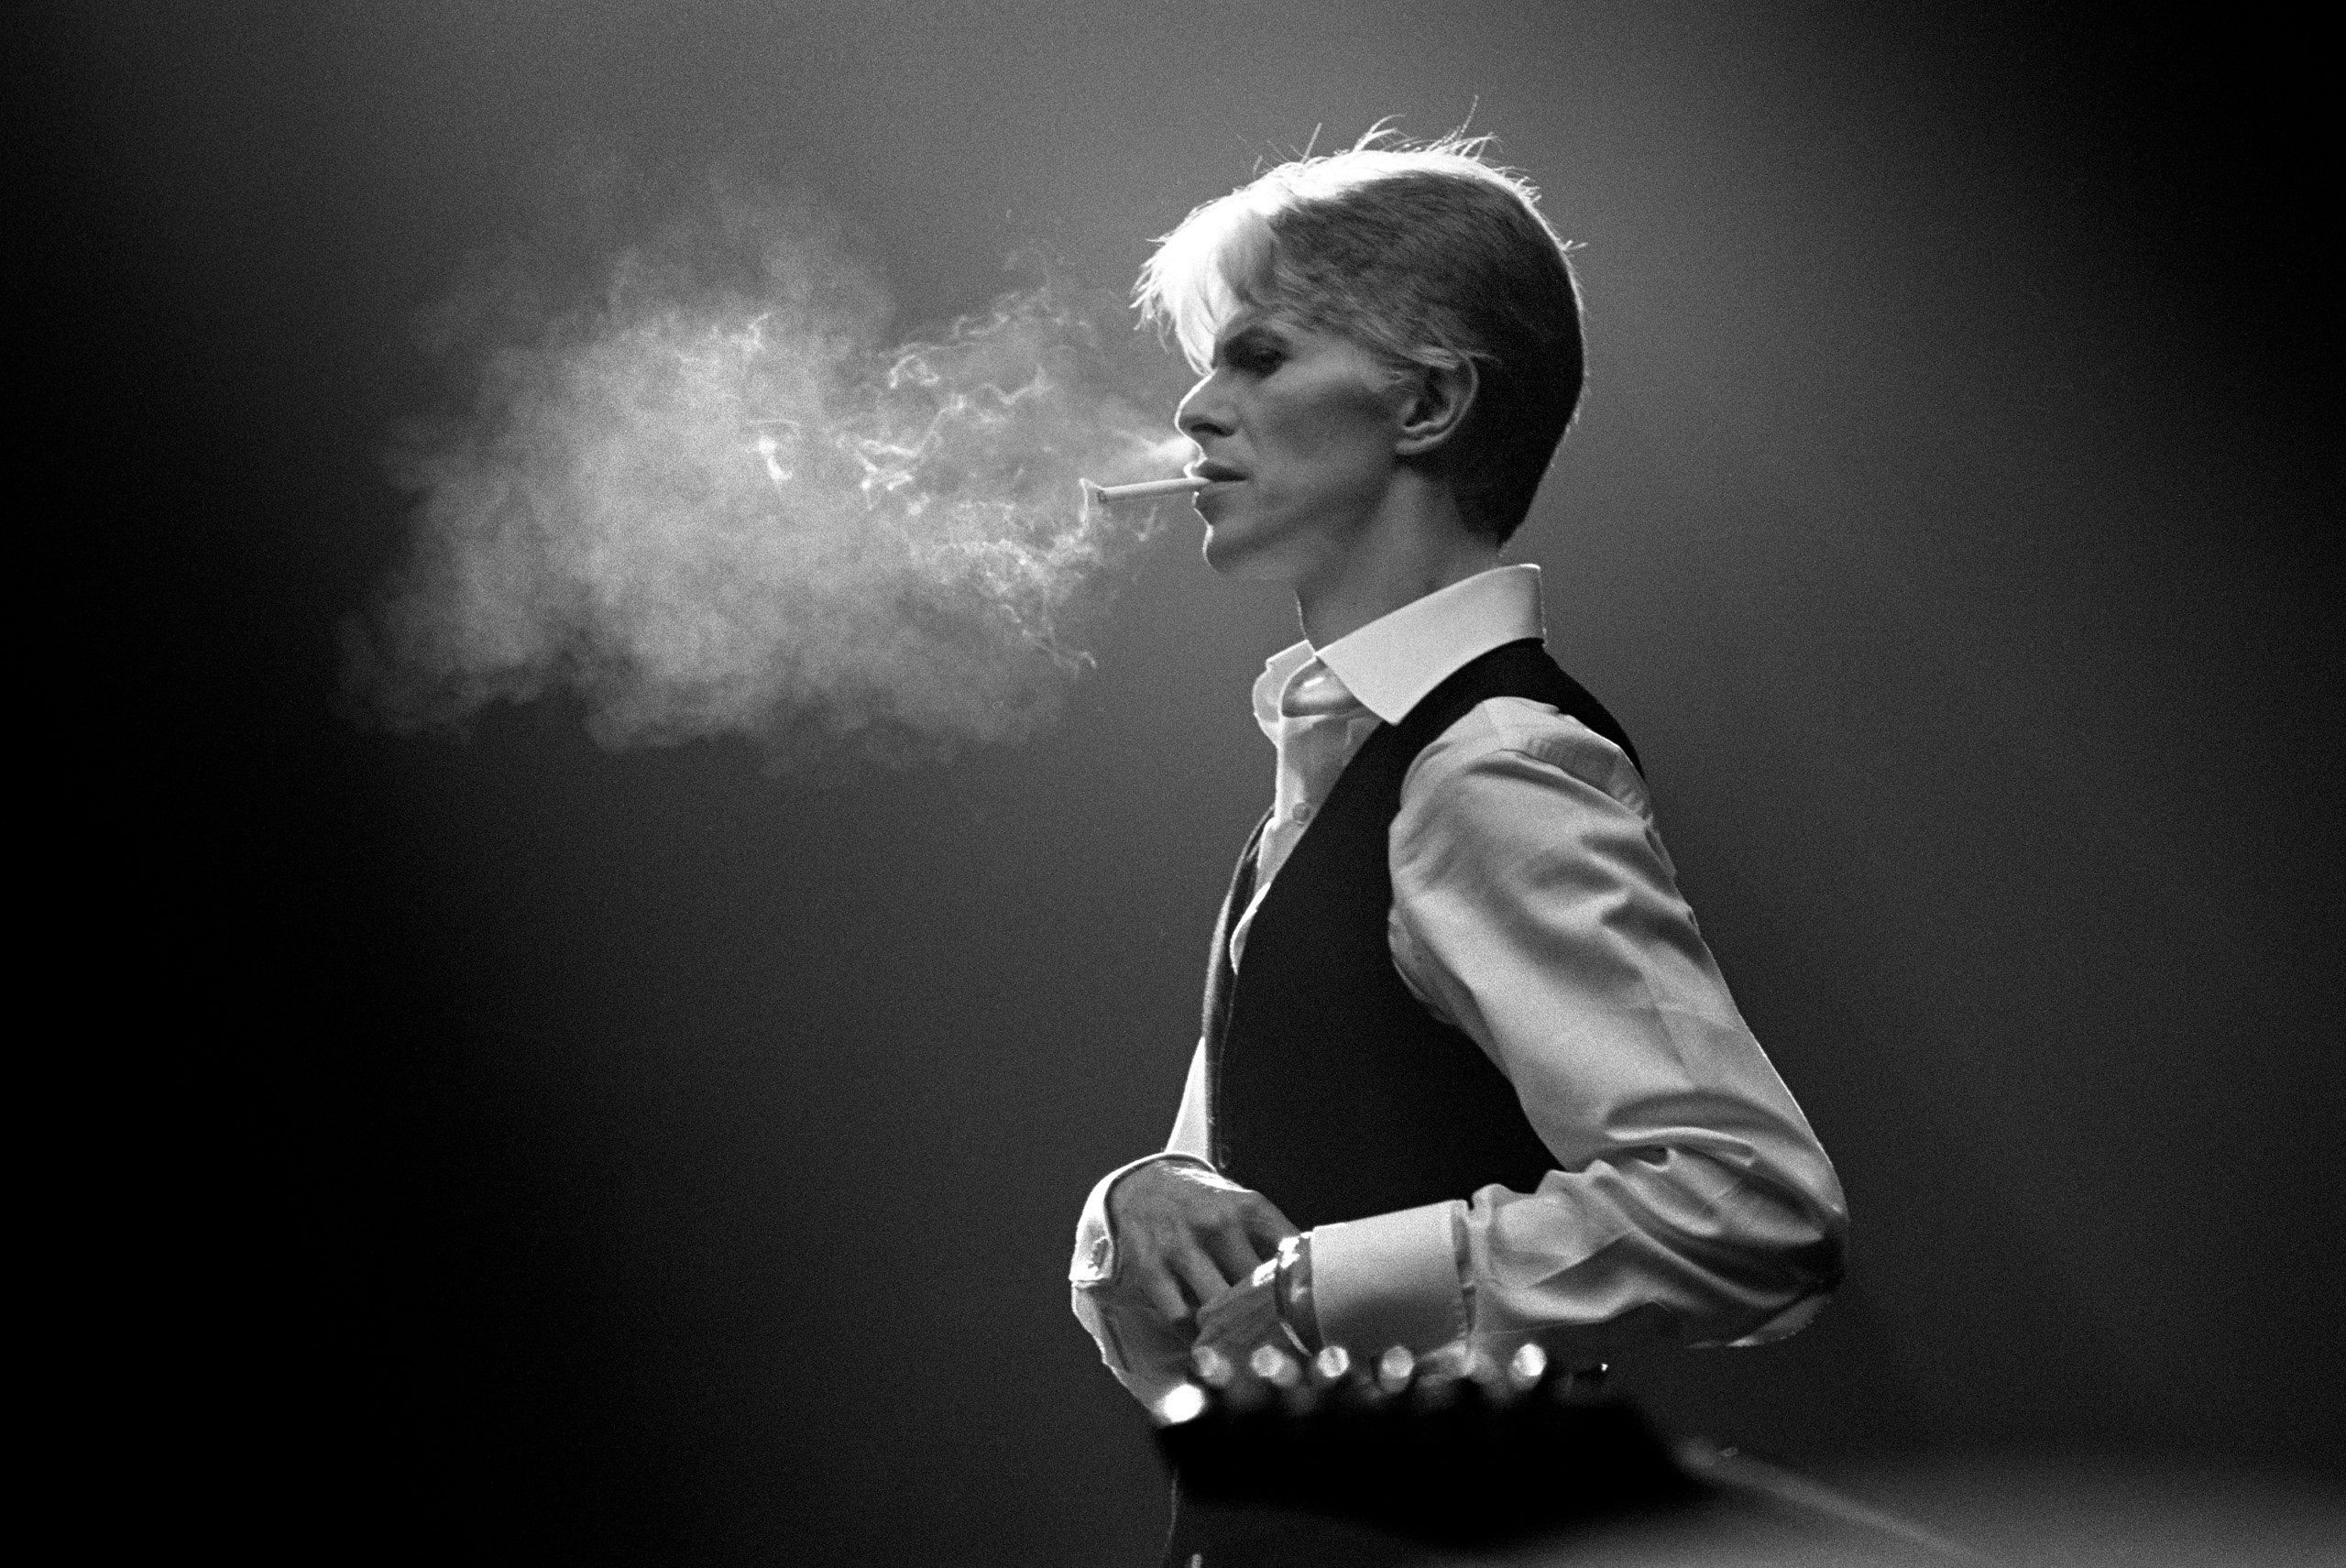 Bowie's Thin White Duke persona, smoking a Gitanes cigarette, 1976.